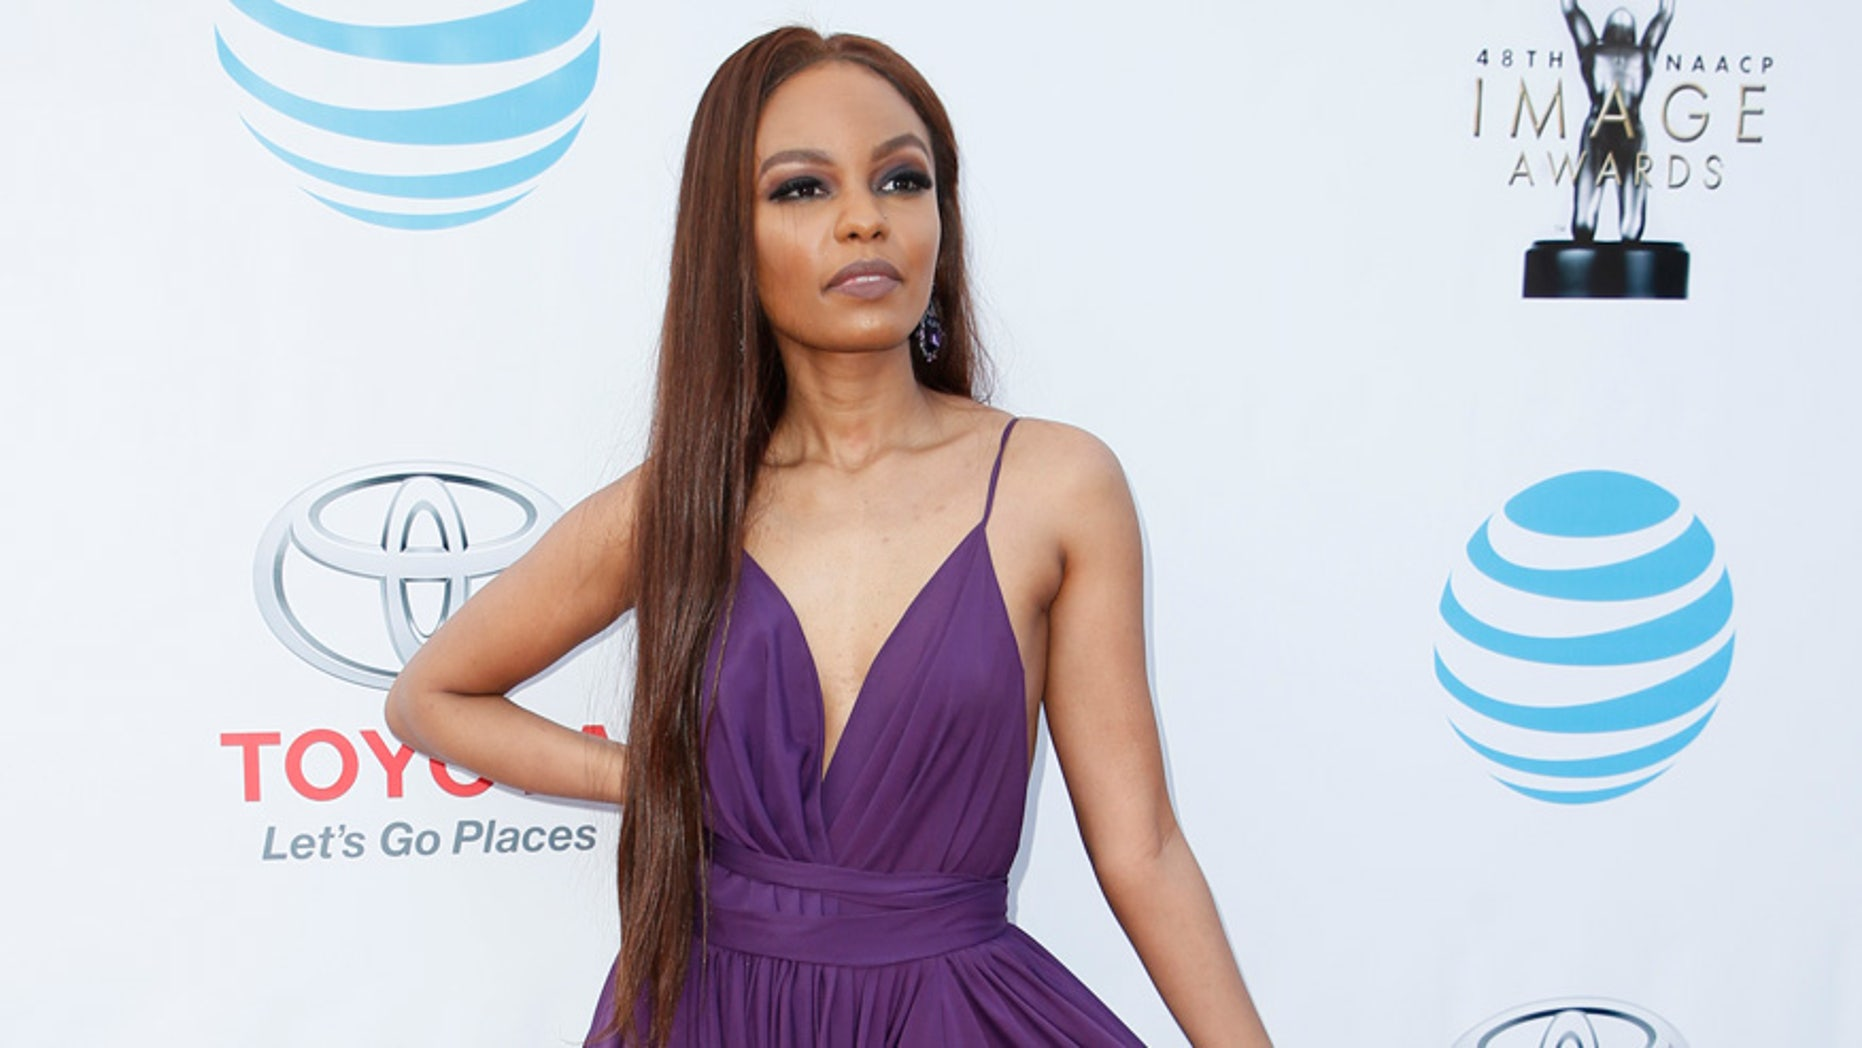 Sierra McClain arrives at the 48th NAACP Image Awards in Pasadena, California on February 11, 2017.